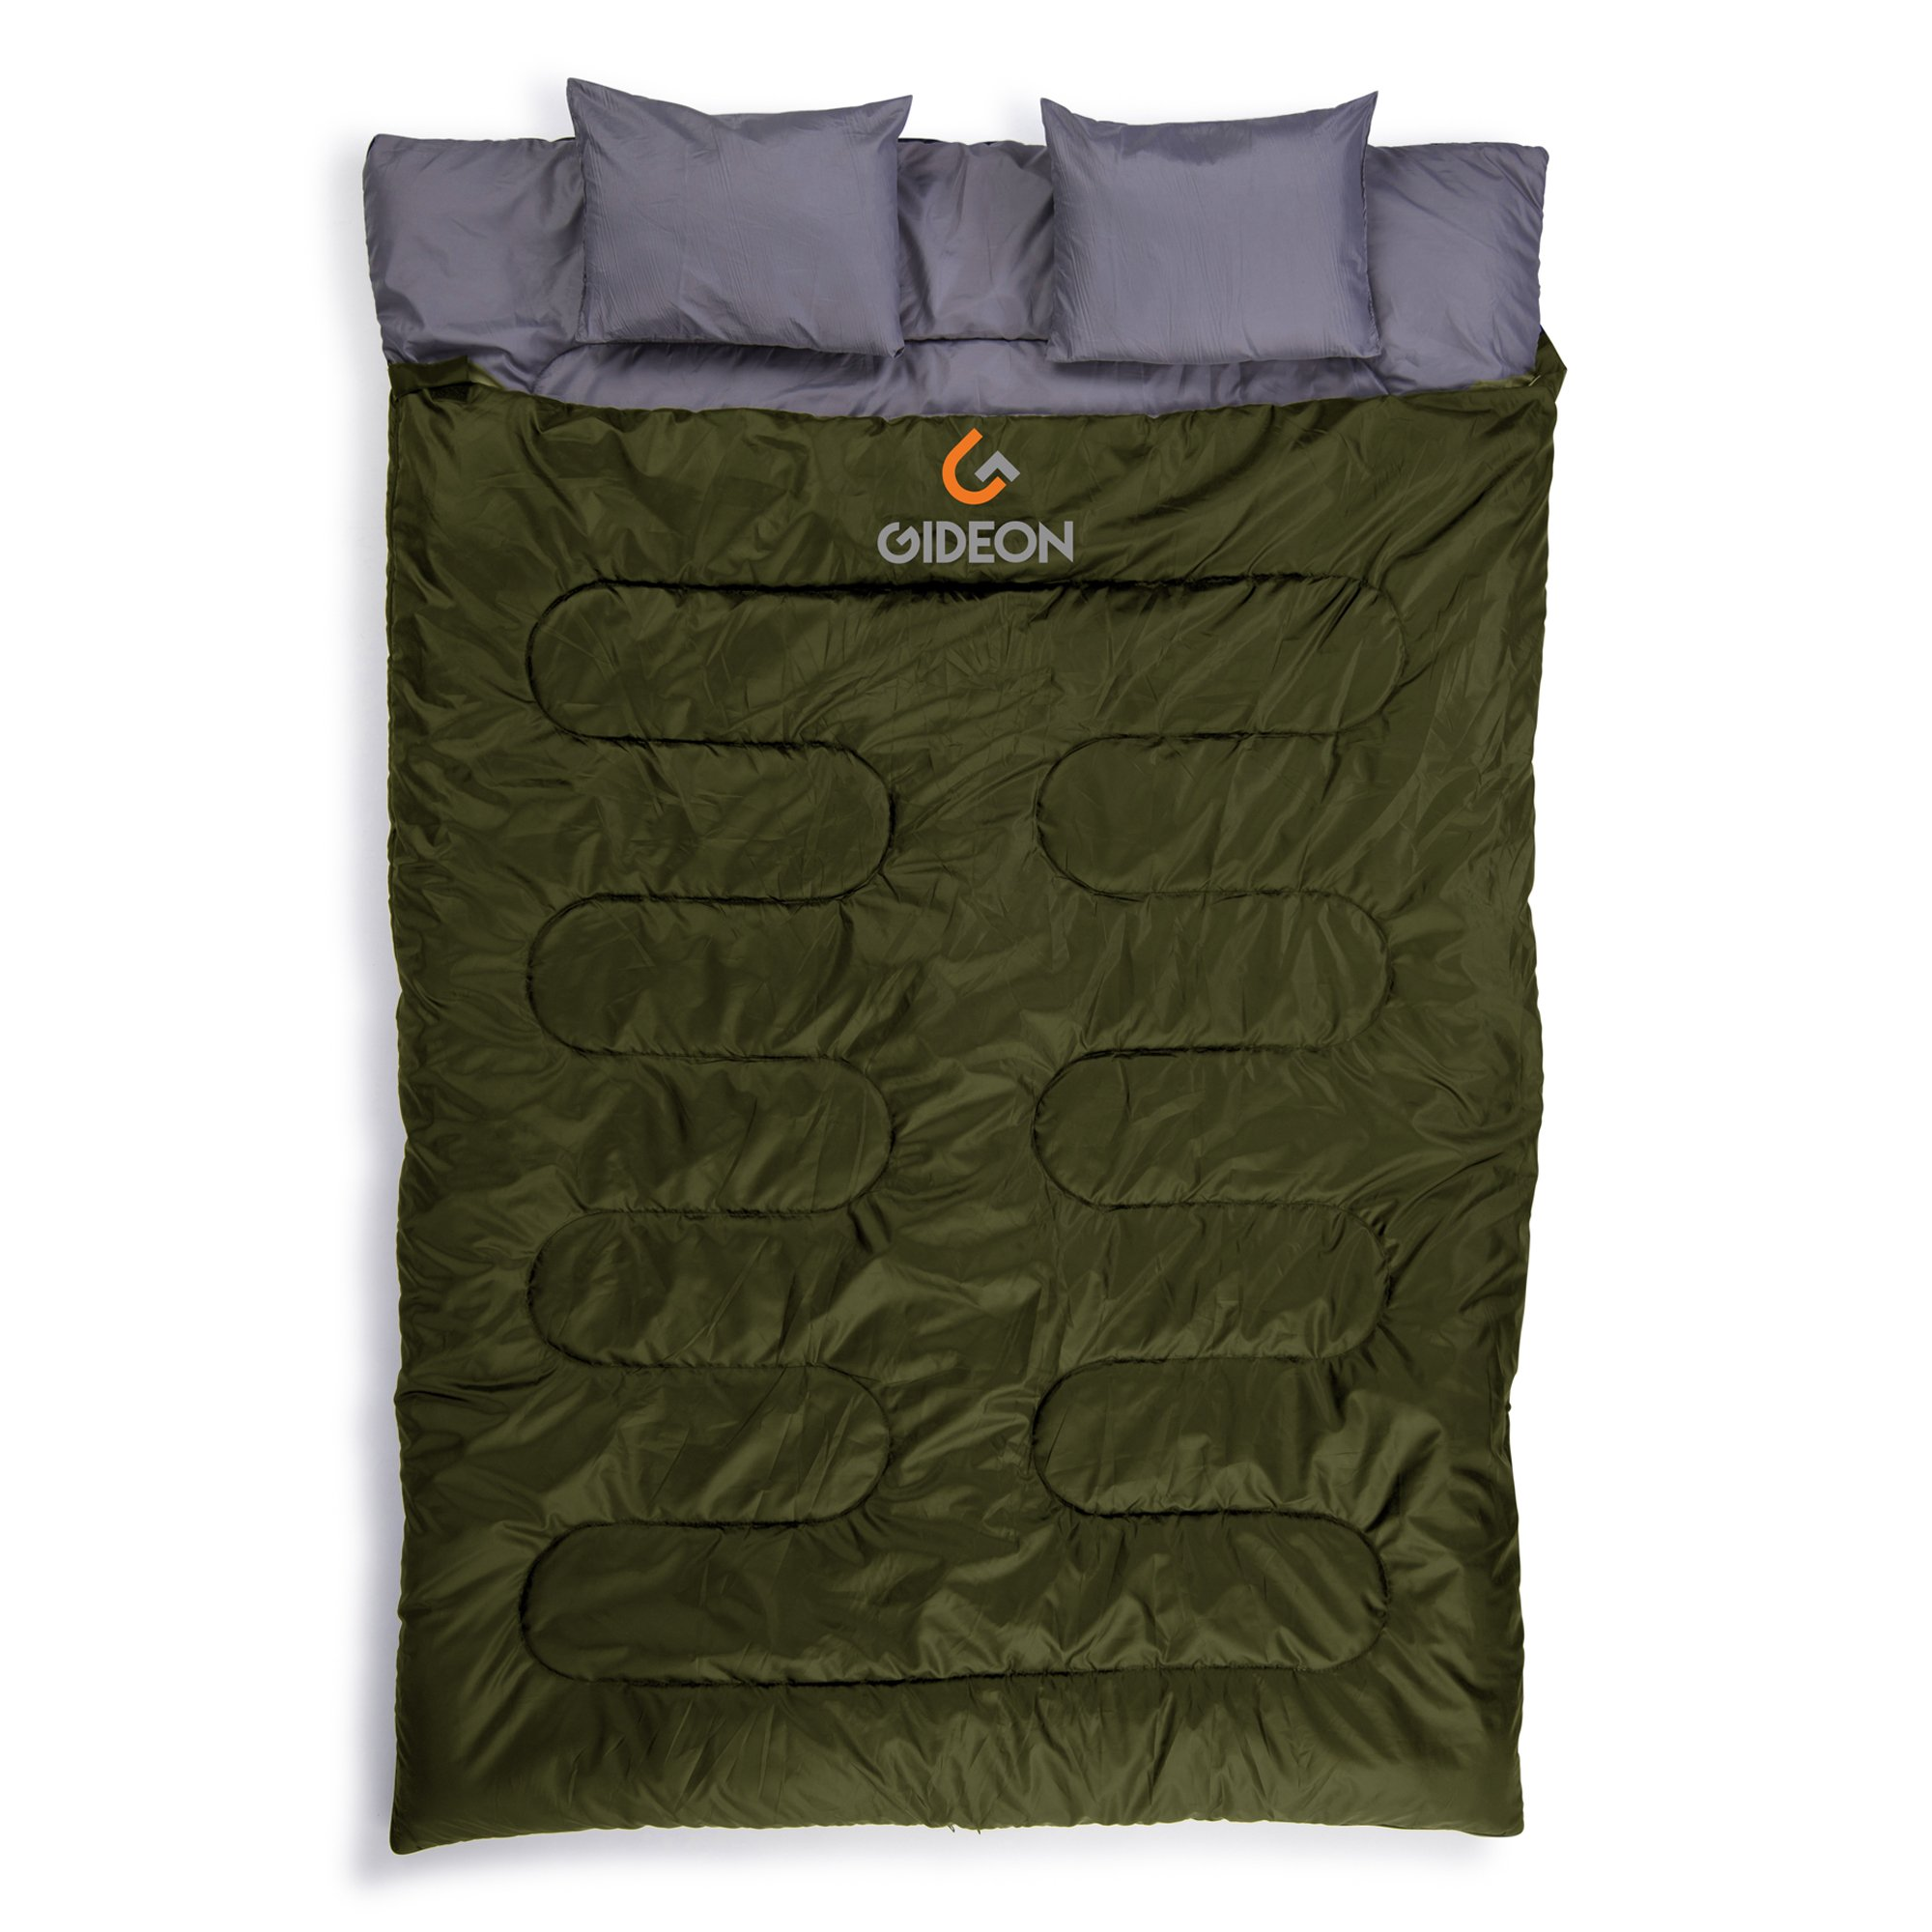 Gideon Extreme Waterproof Backpacking Double Sleeping Bag 2 Pillows – Amazingly Lightweight, Compact, Comfortable & Warm Backpacking, Camping, etc. Double Size Convert into 2-Single Bags by Gideon